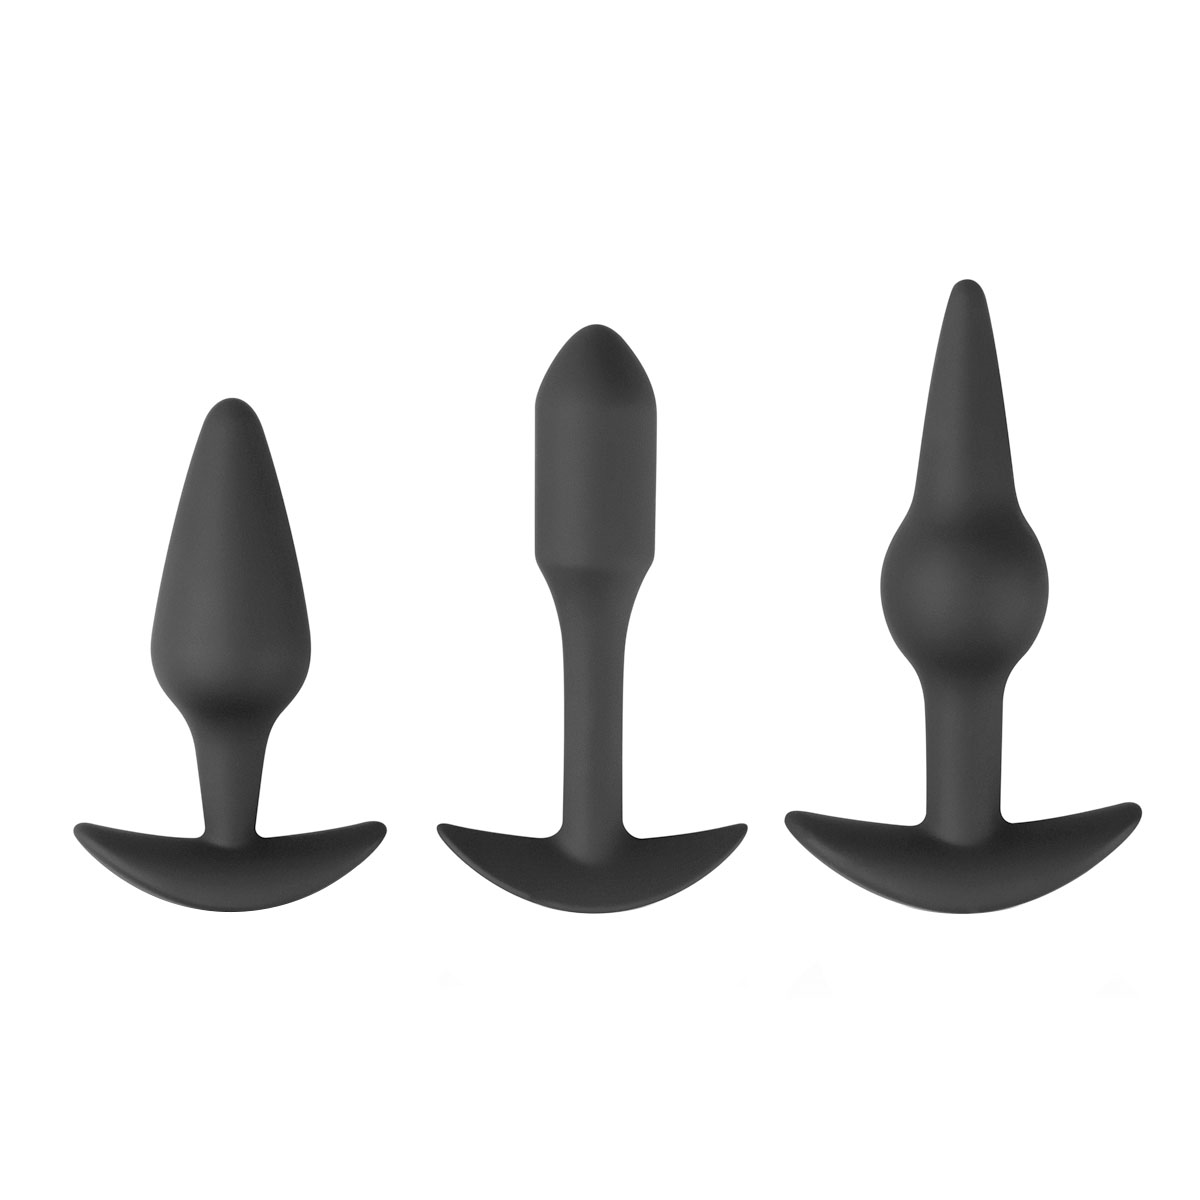 EasyToys Buttplug Sett Pleasure